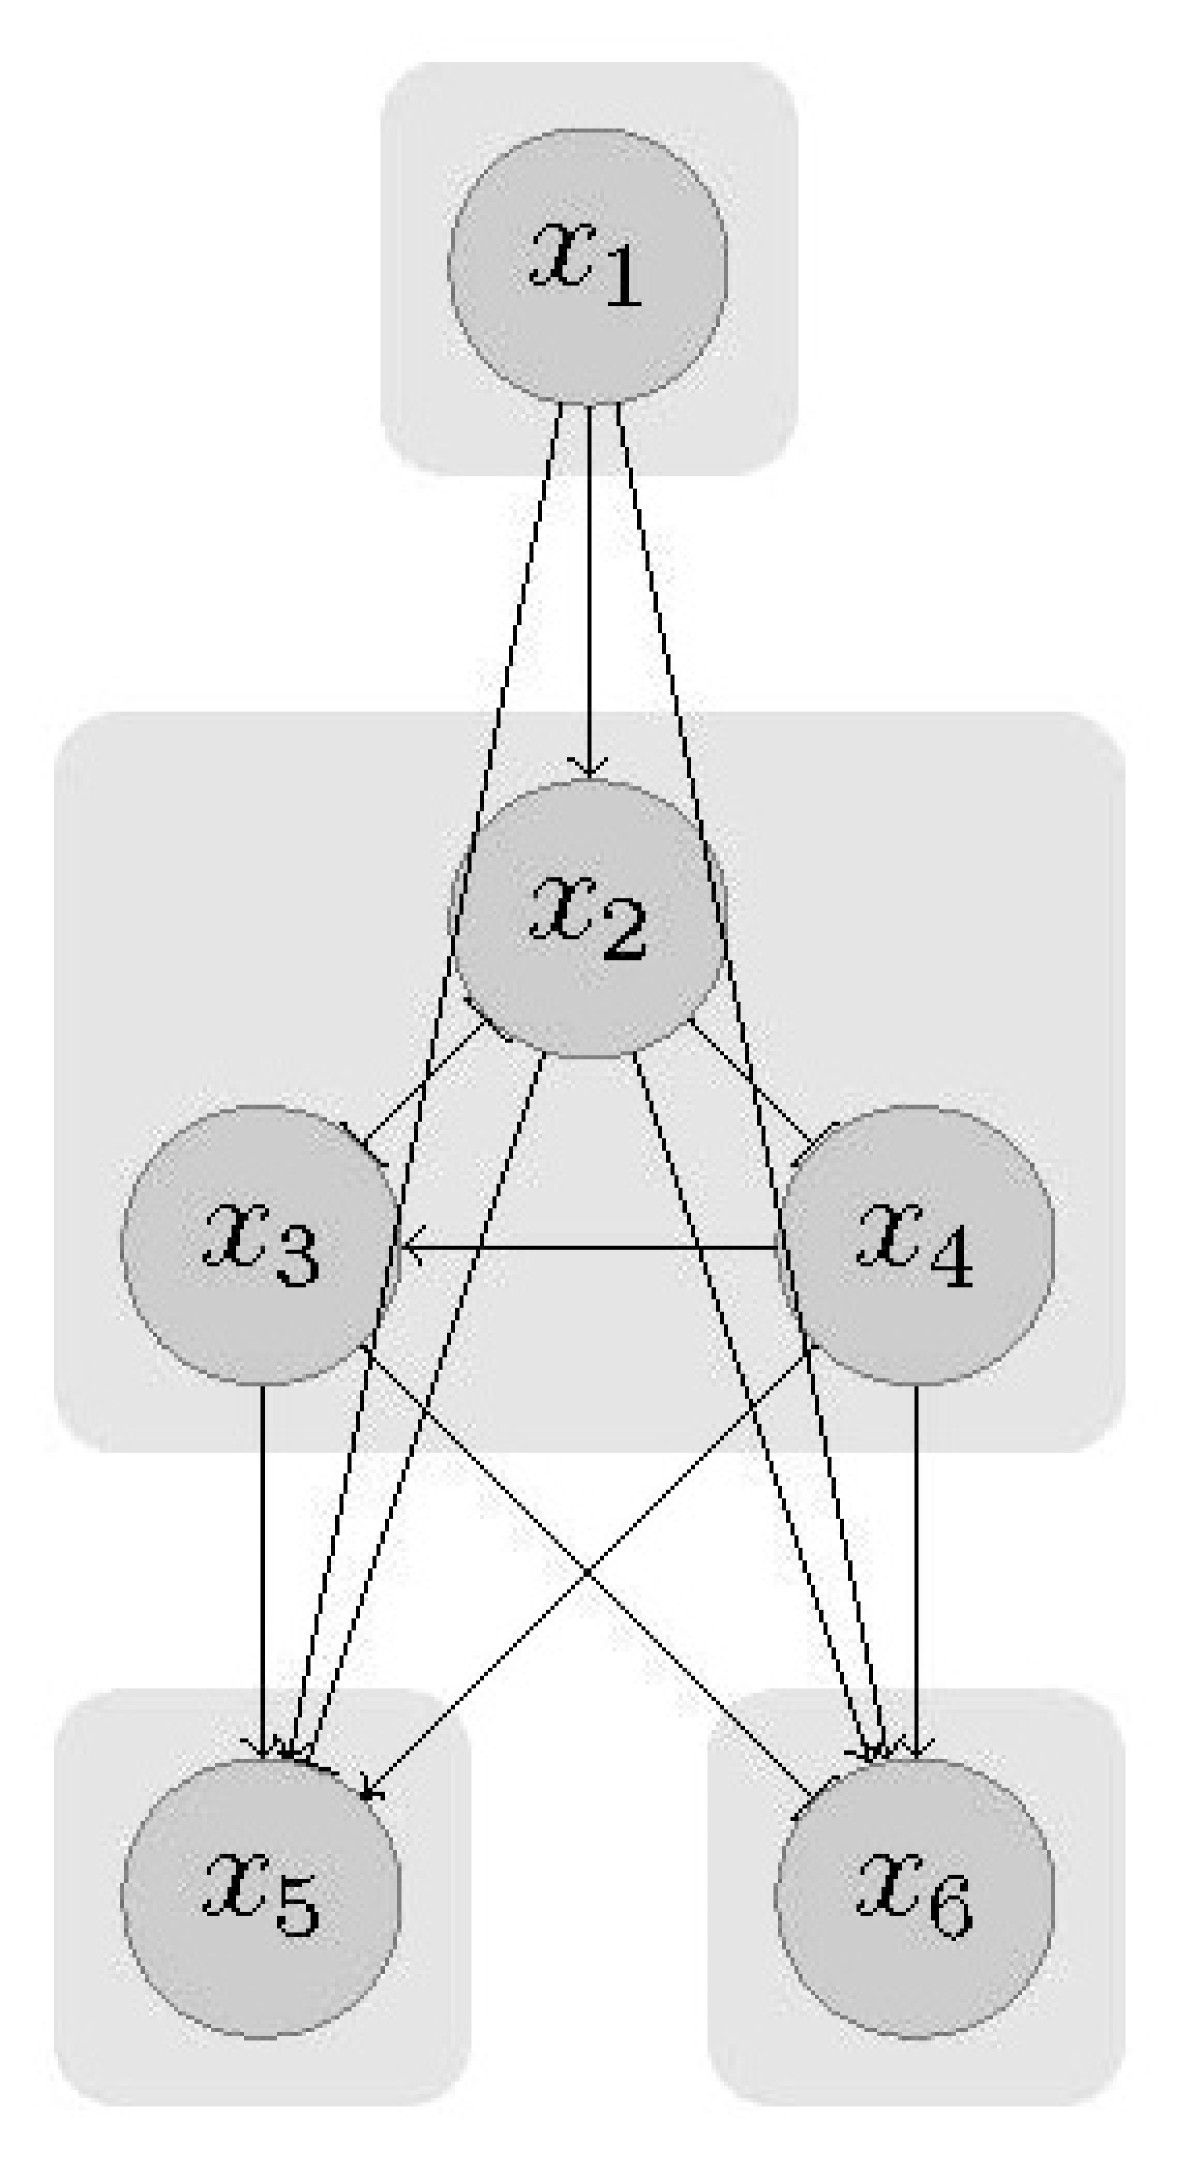 https://static-content.springer.com/image/art%3A10.1186%2F1752-0509-6-57/MediaObjects/12918_2011_Article_912_Fig4_HTML.jpg